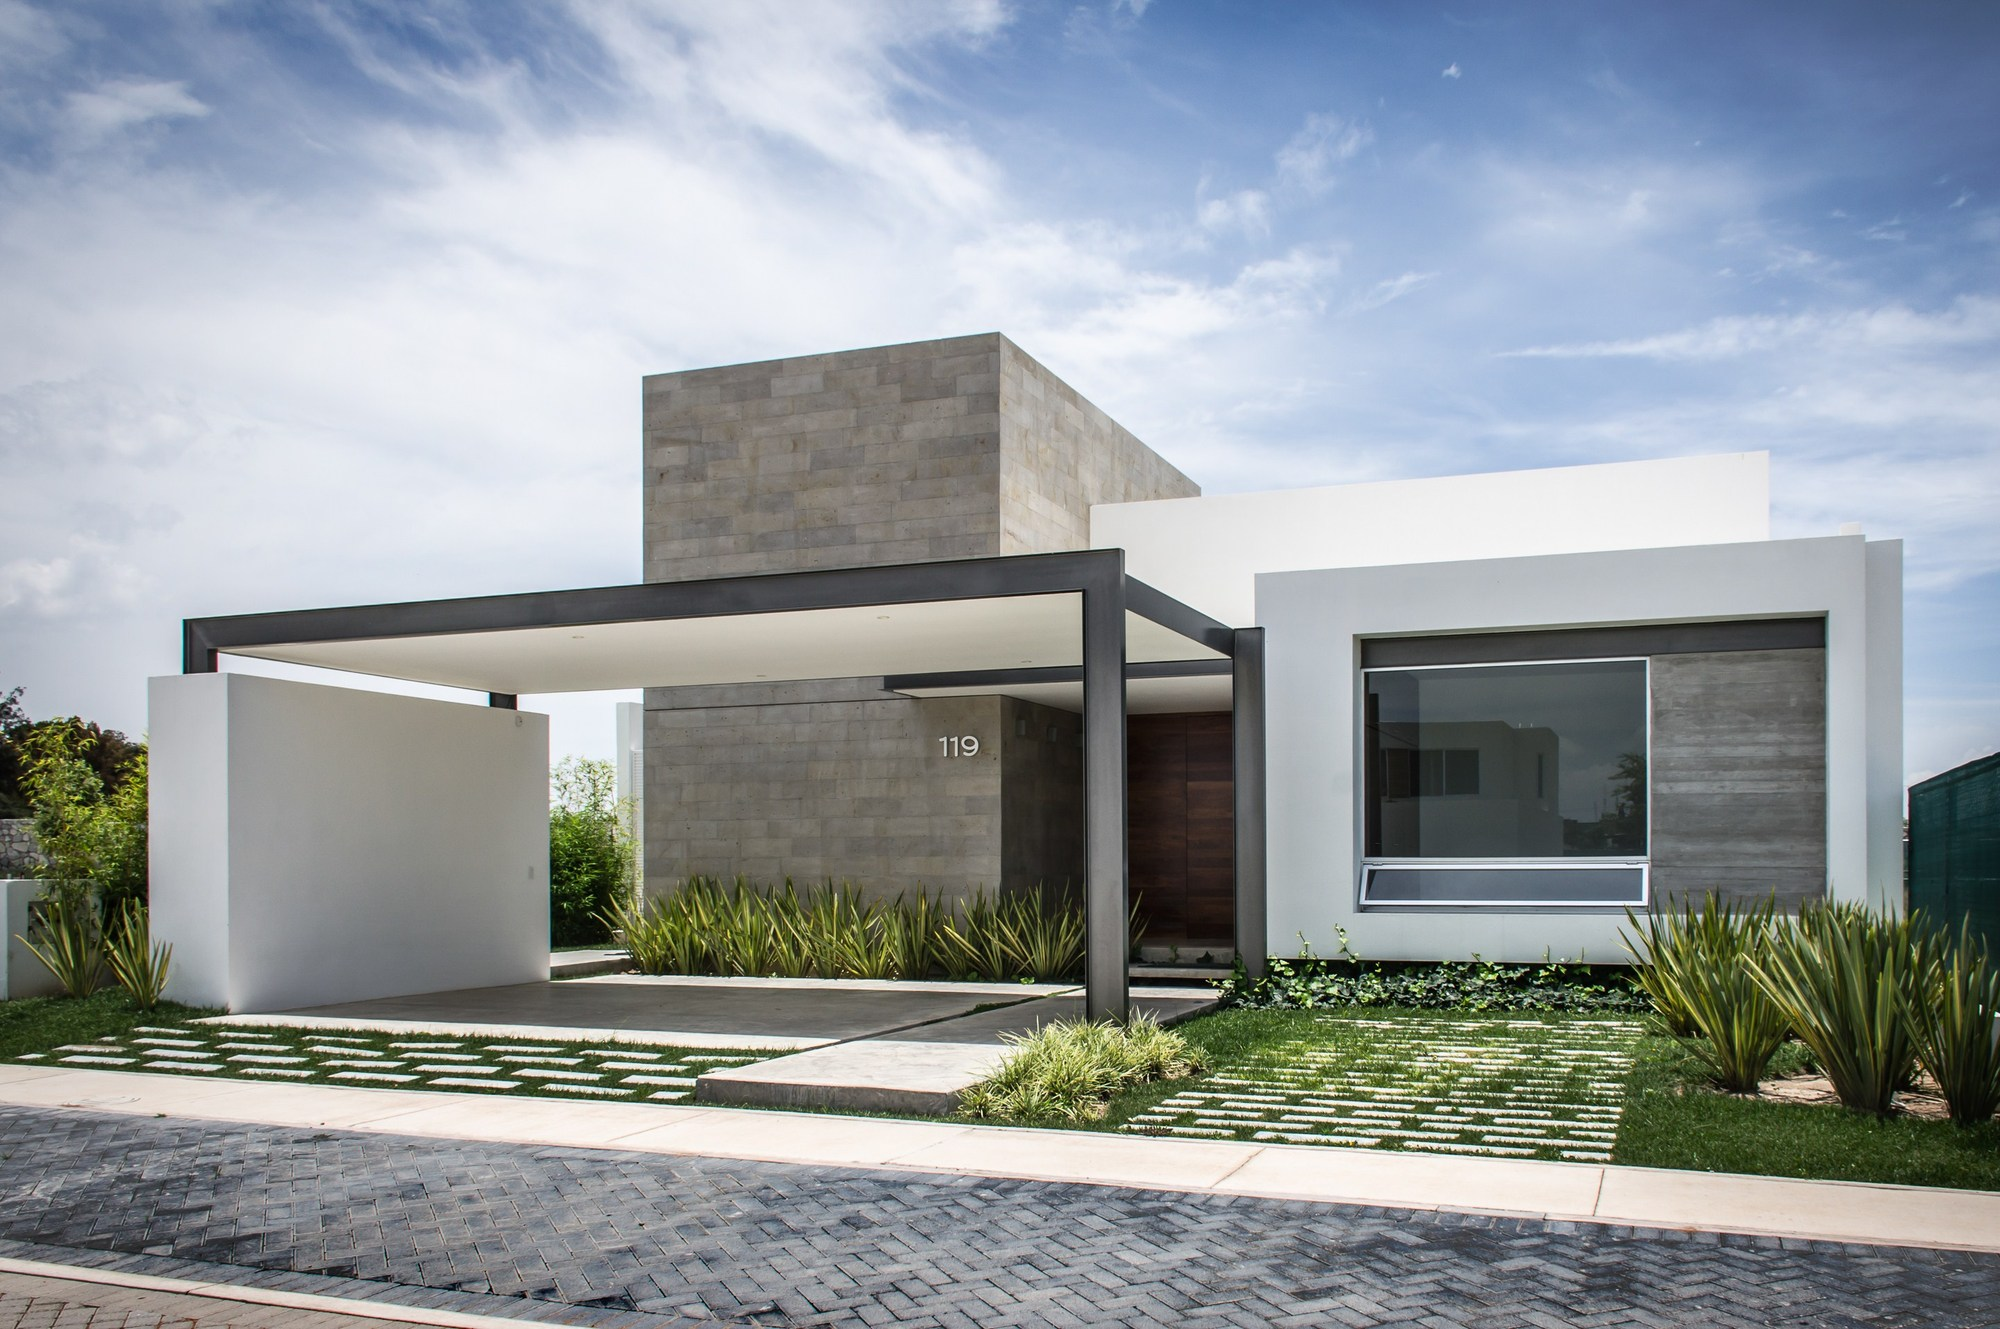 T02 adi arquitectura y dise o interior archdaily m xico for Arquitectura and design